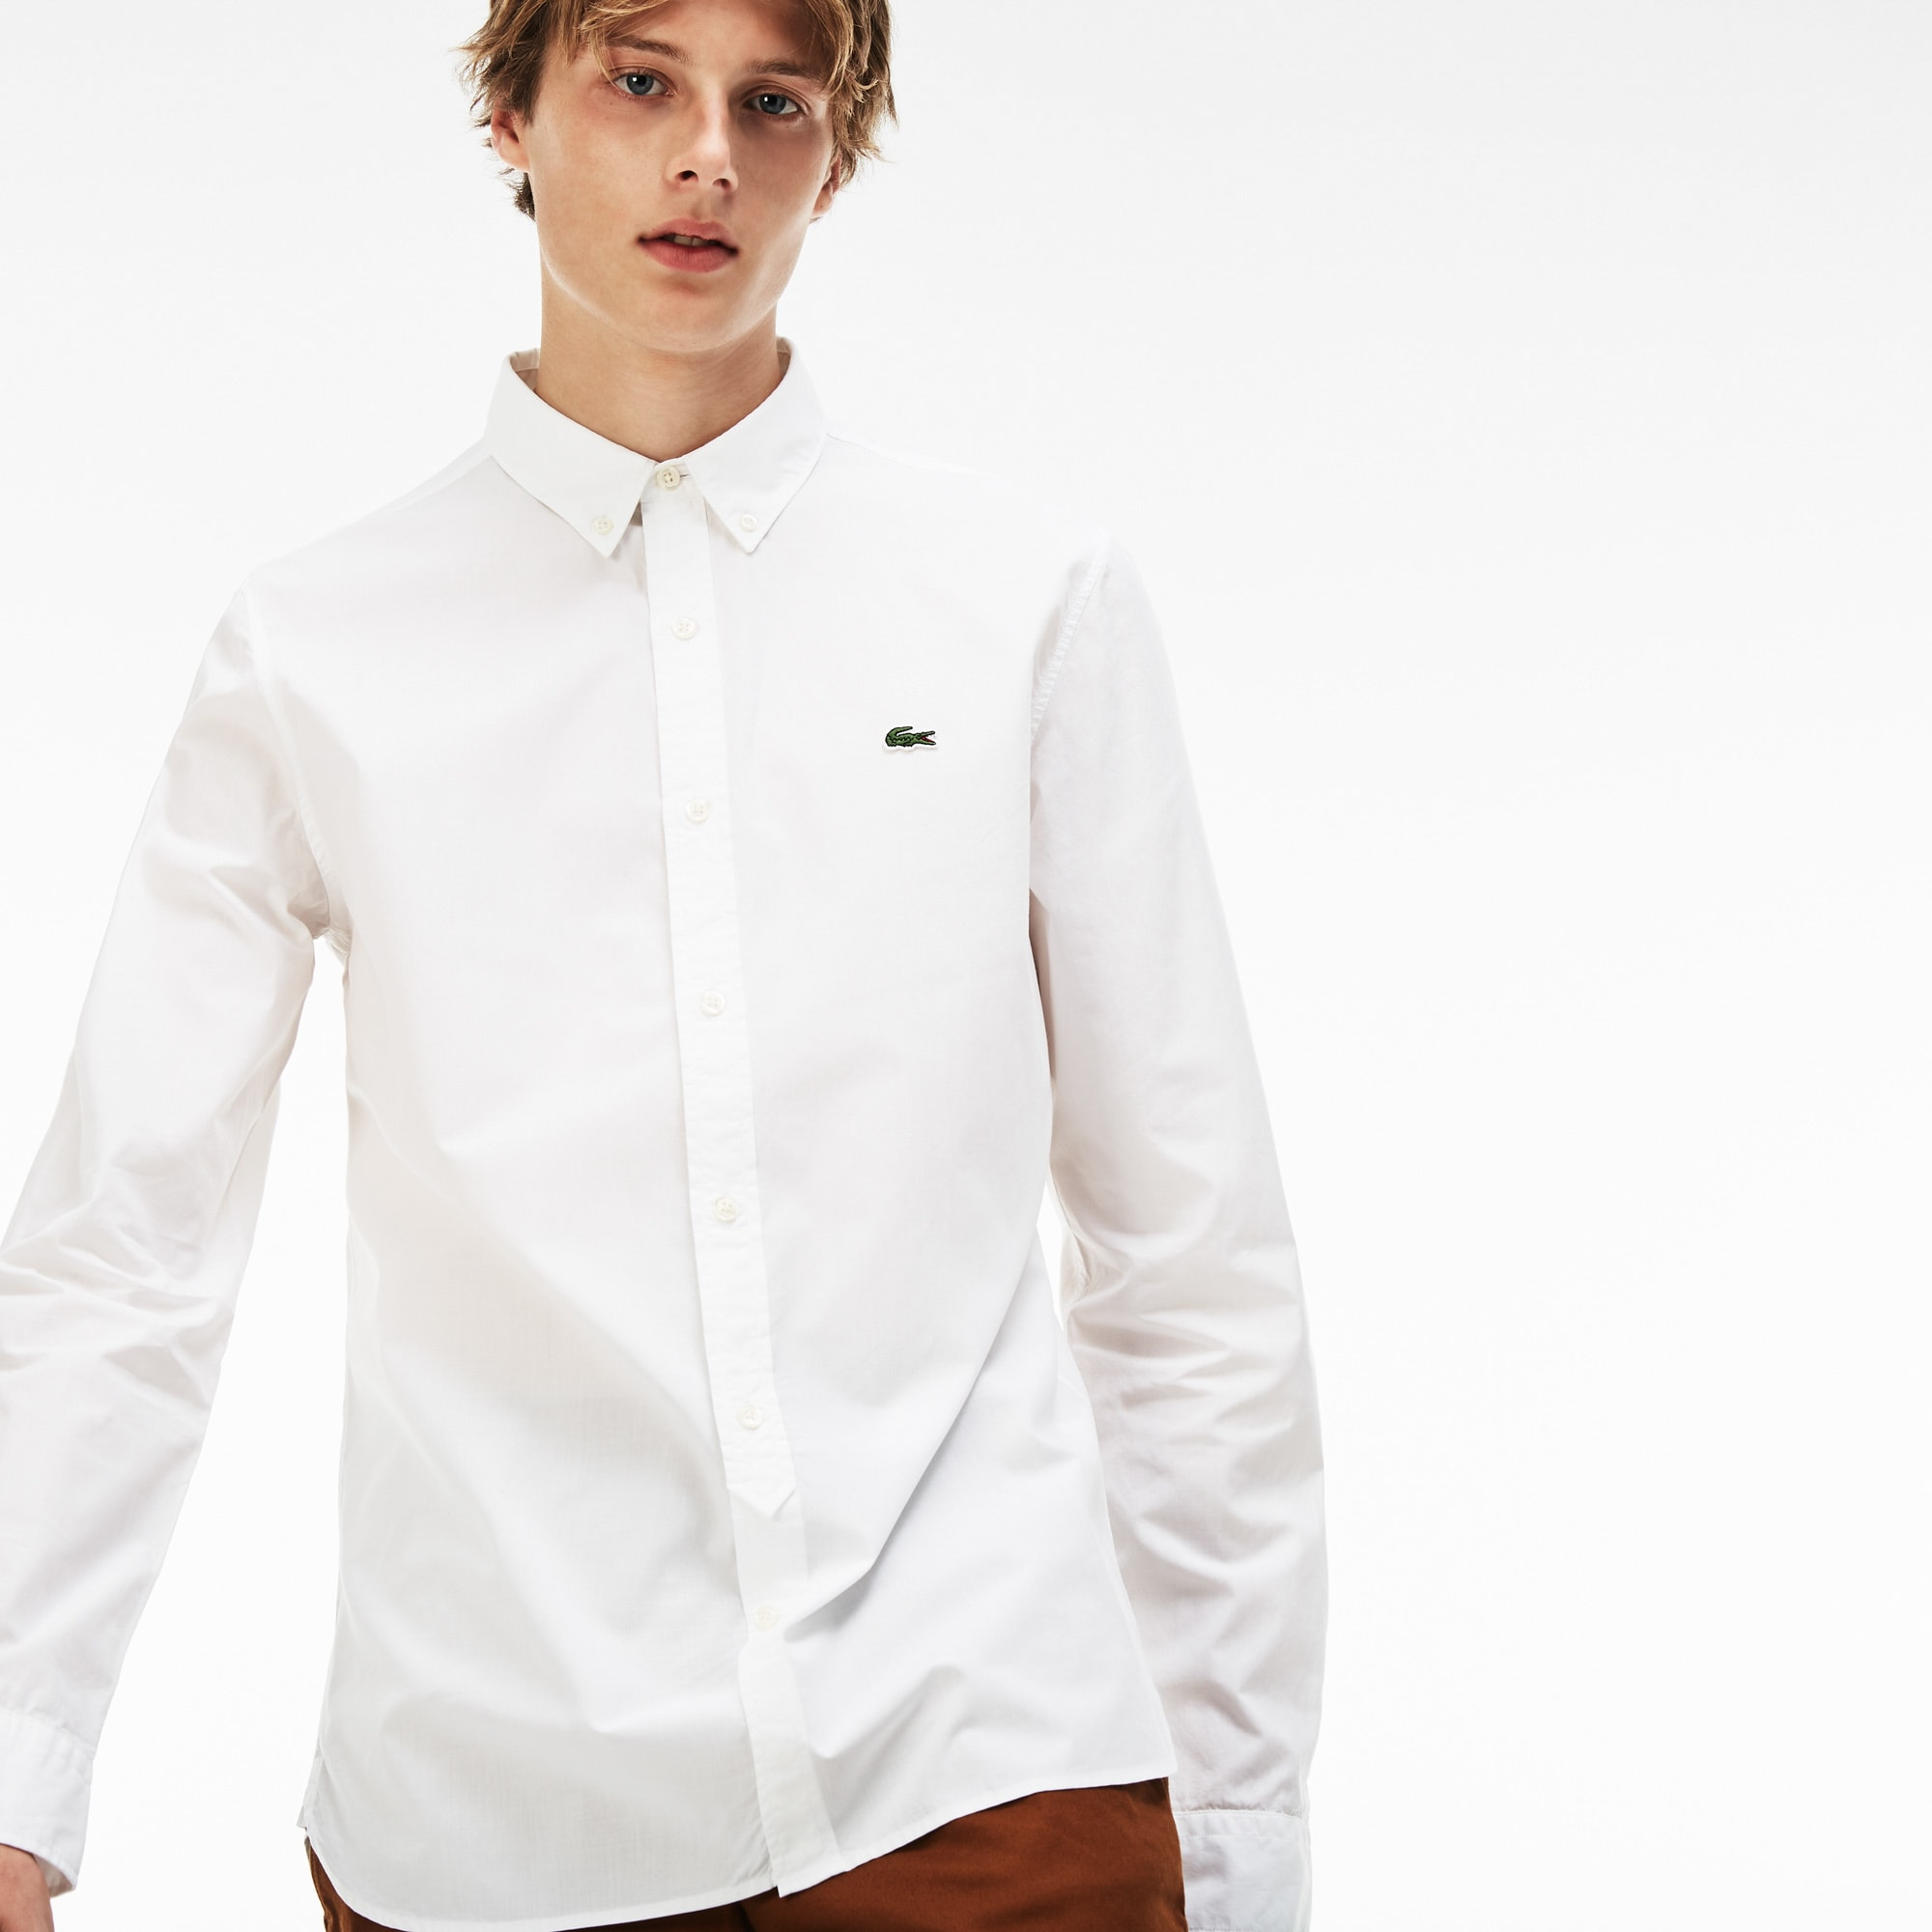 Men's Lacoste LIVE Slim Fit Cotton Poplin Shirt